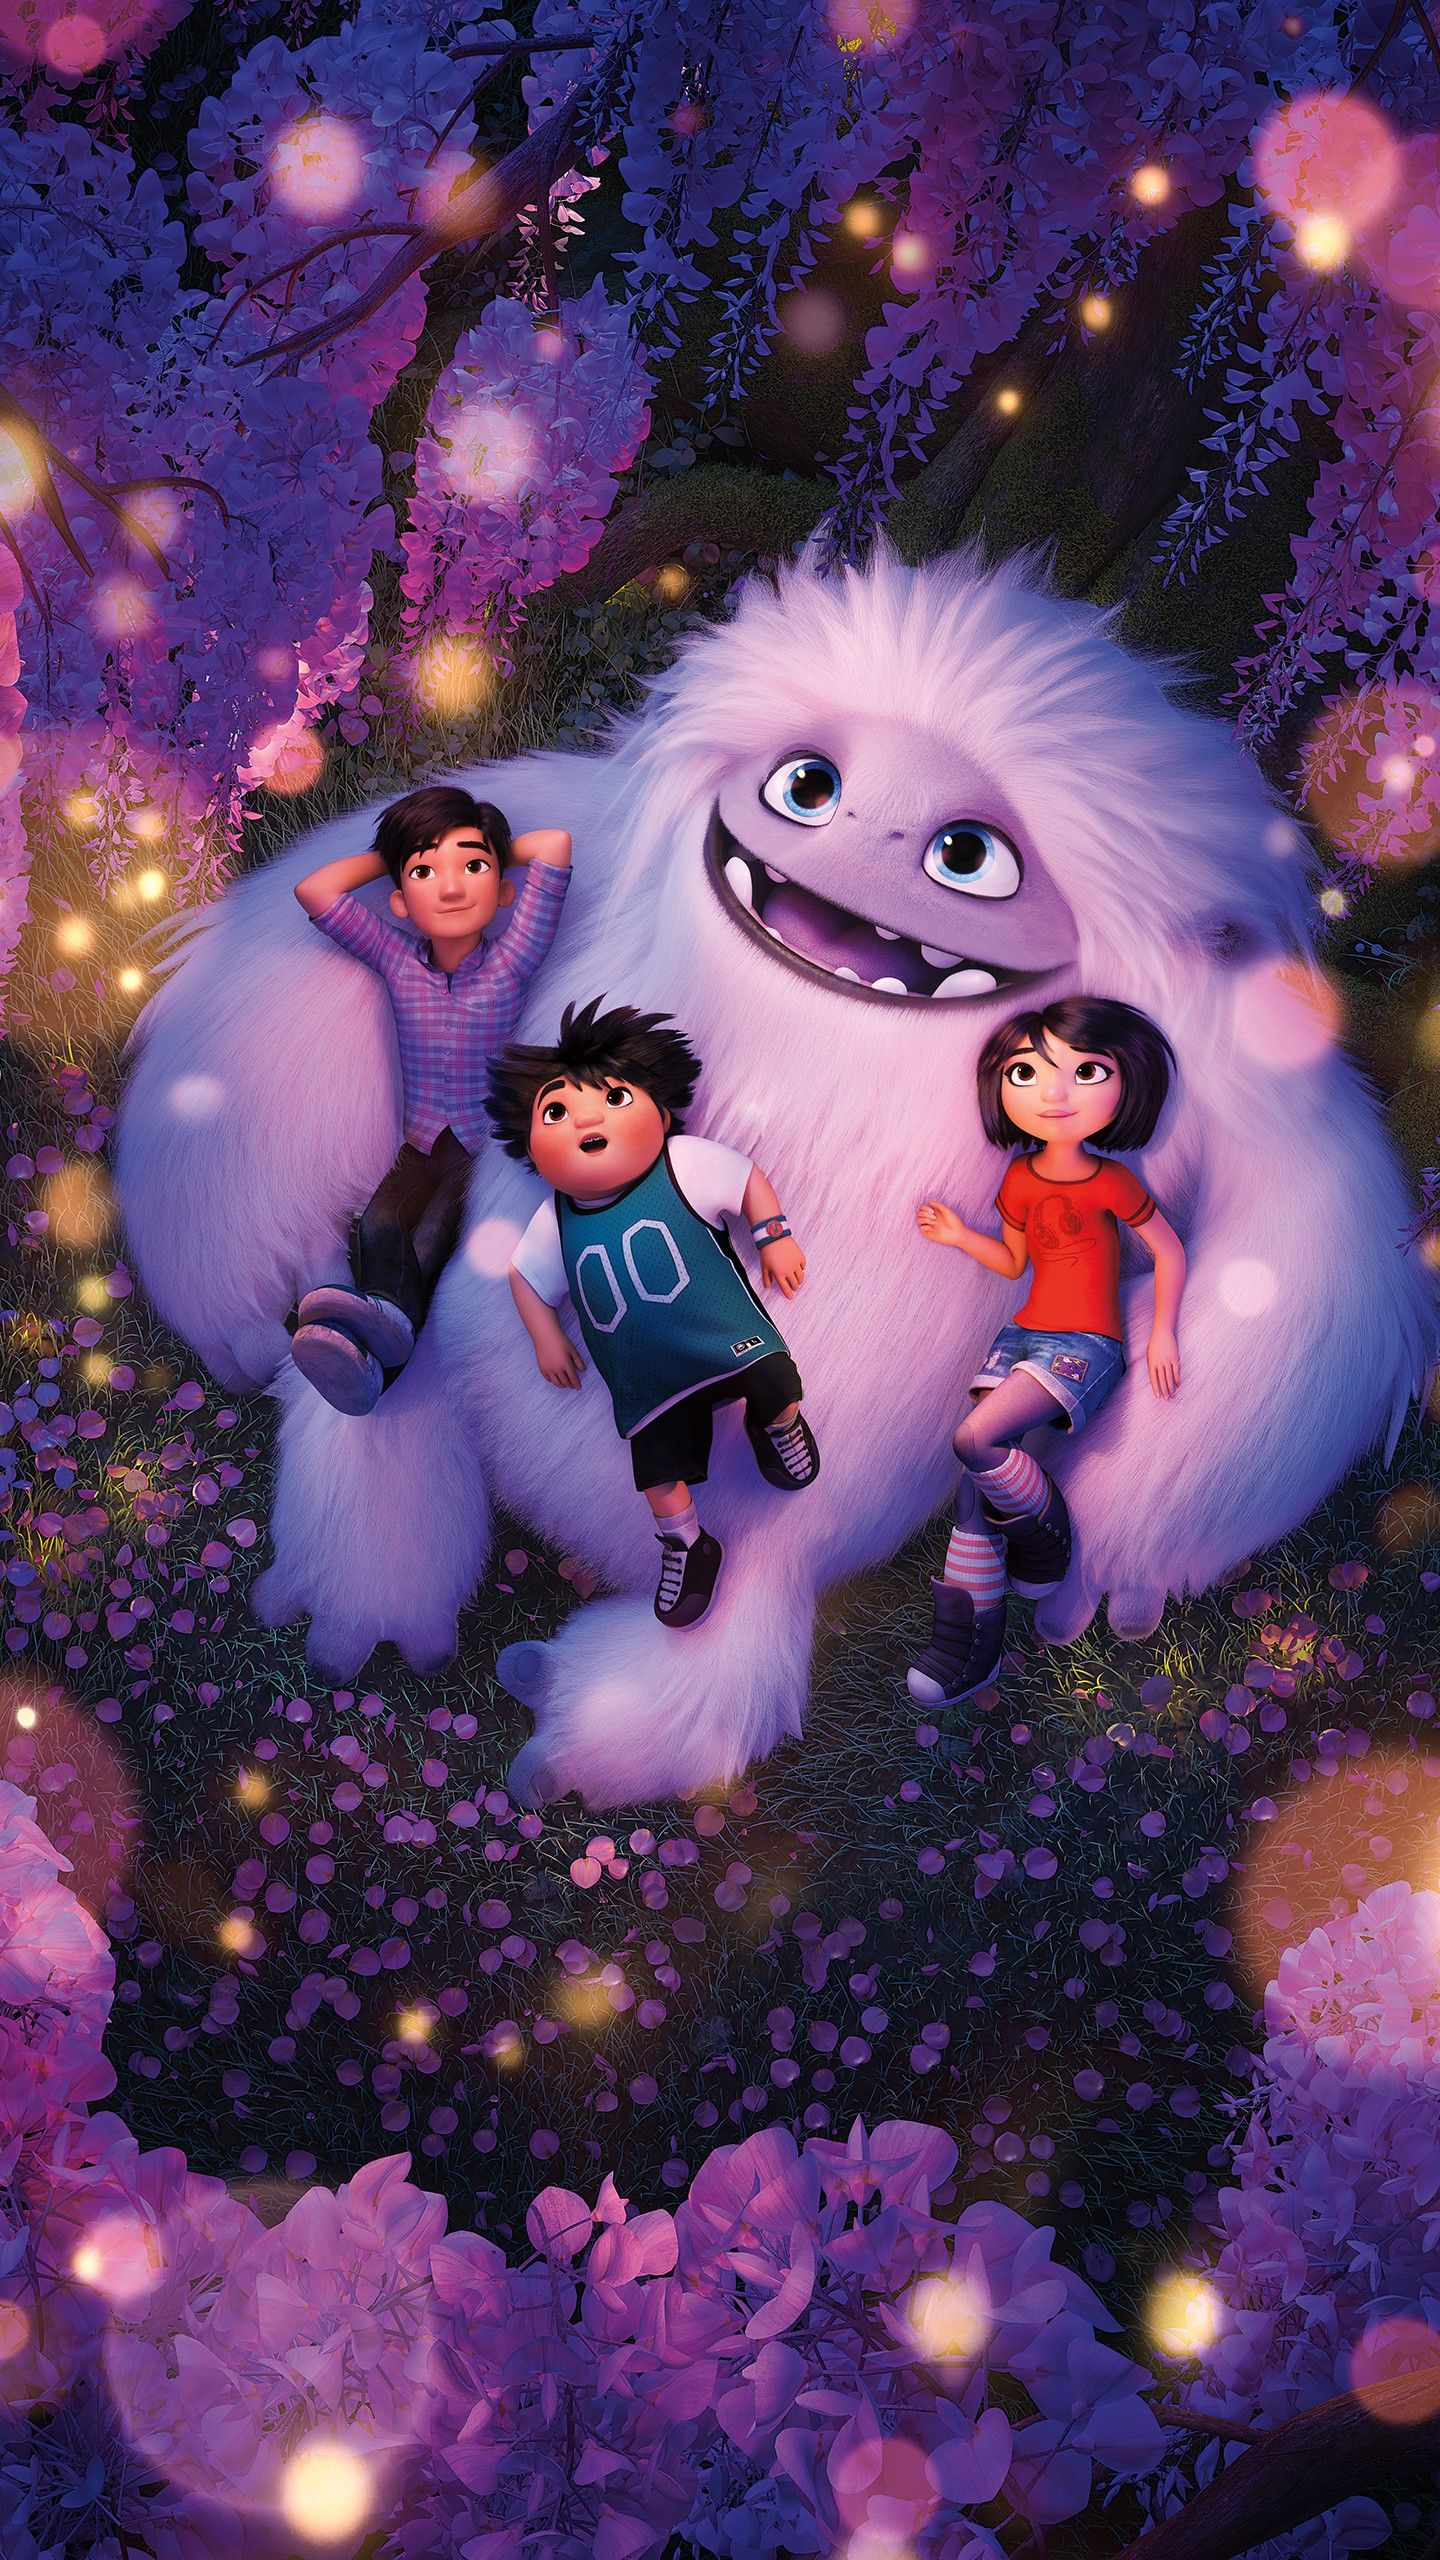 1440x2560 Abominable 2019 Animation Wallpapers